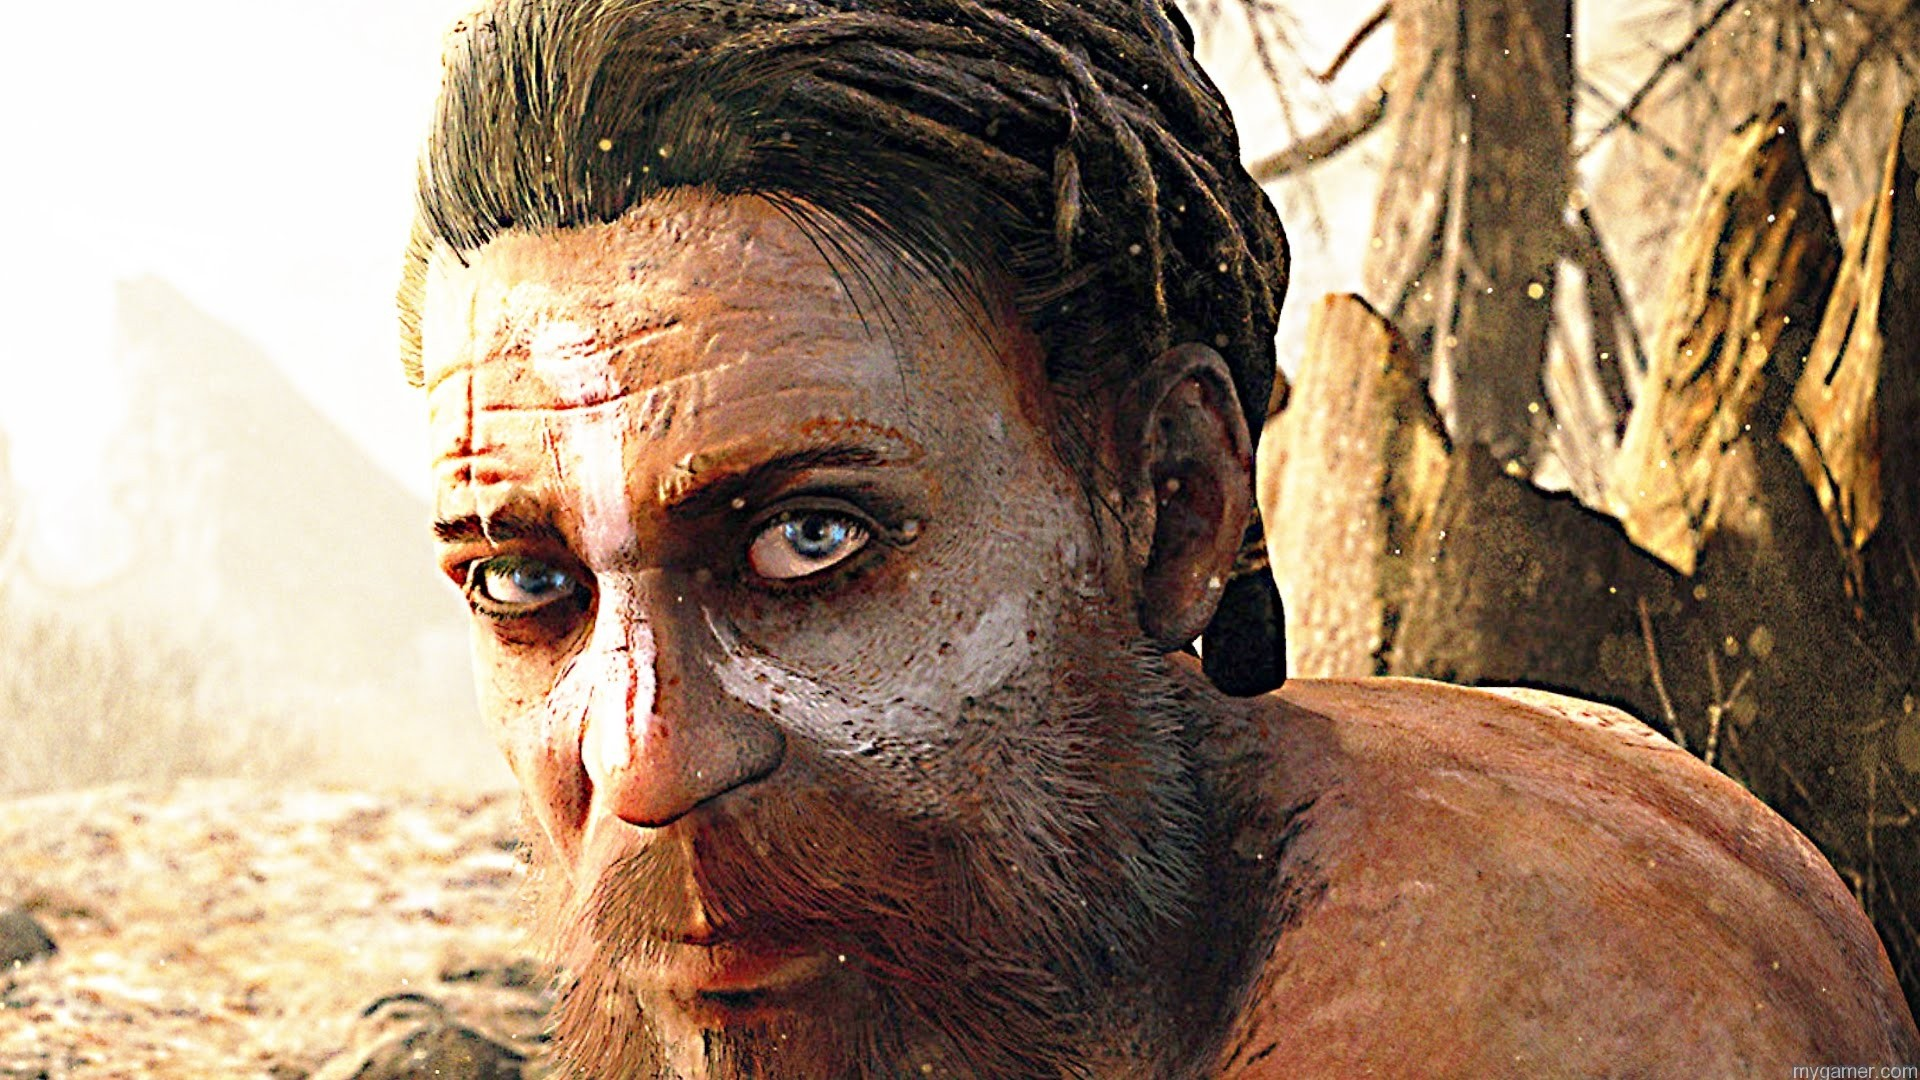 Far Cry Primal Far Cry Primal Now Available Far Cry Primal Now Available Far Cry Primal